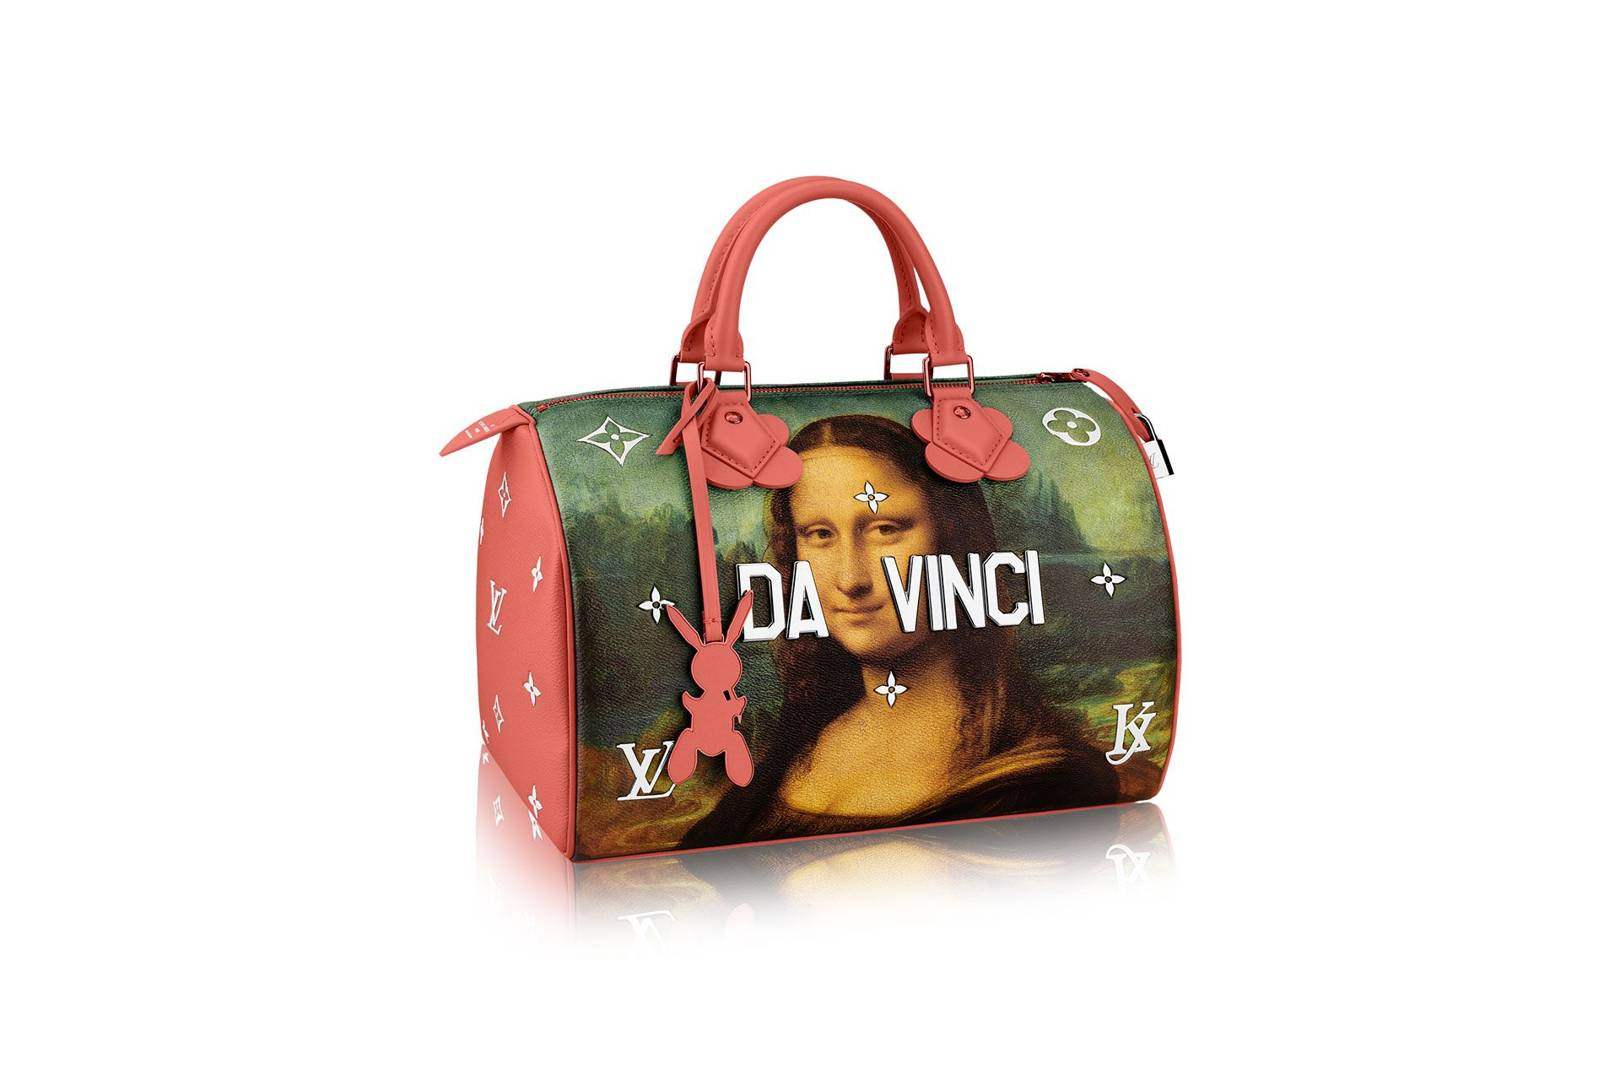 941ba61cf7c8 Louis Vuitton Launches Collaboration With Jeff Koons